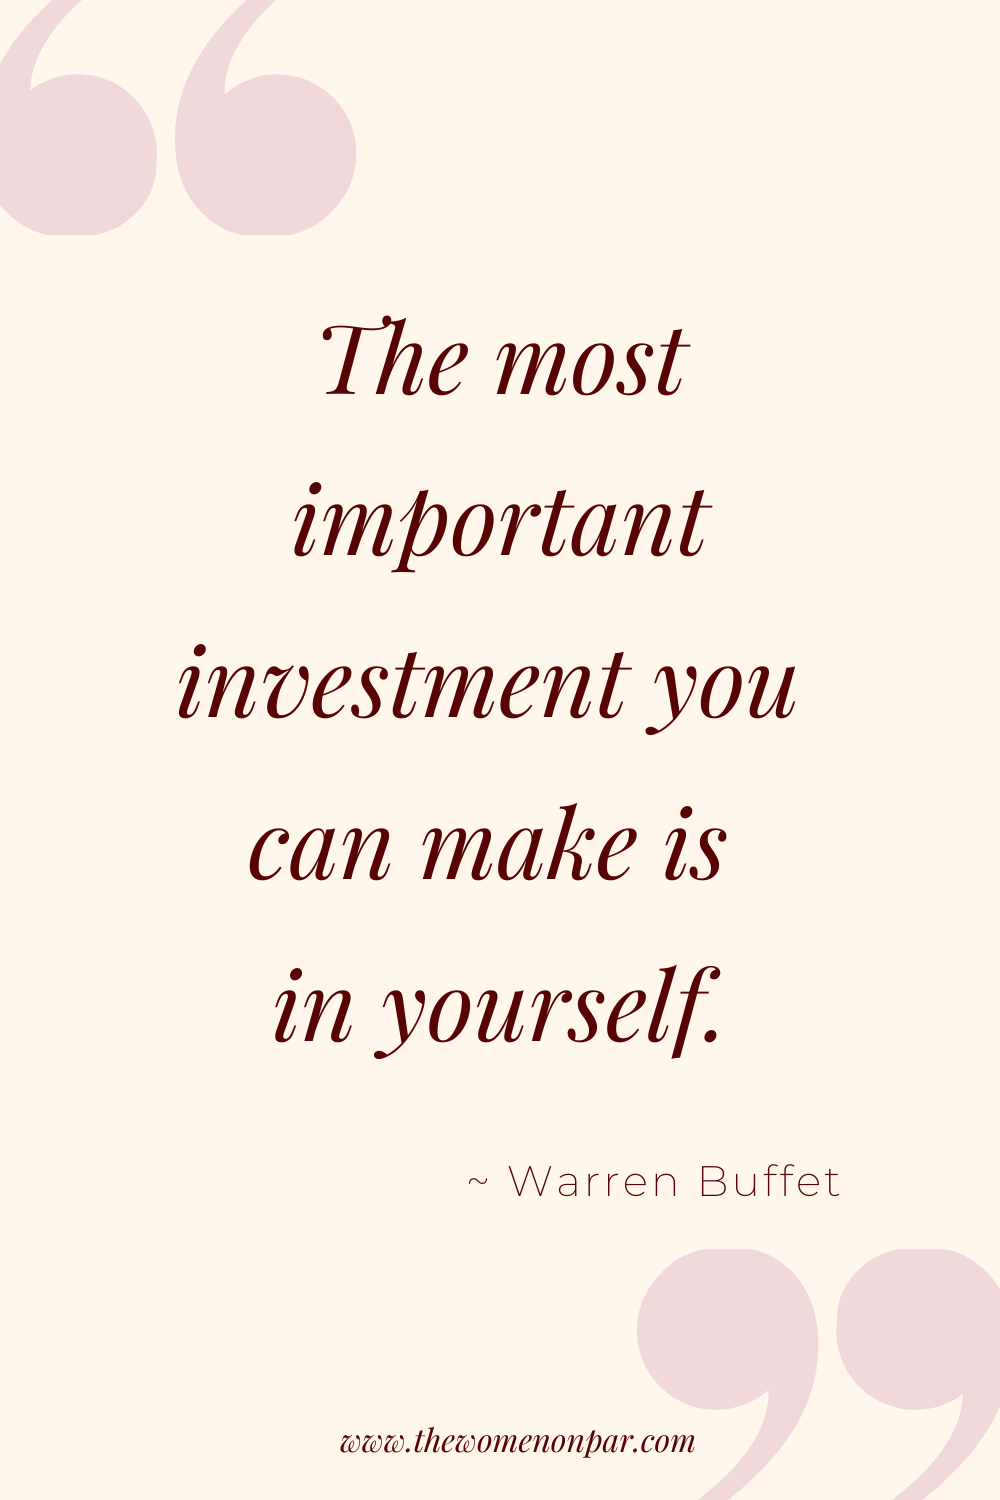 Financially Independent Woman Quotes : financially, independent, woman, quotes, Inspiring, Money, Quotes, Women, Achieve, Financial, Independence, Freedom, Quotes,